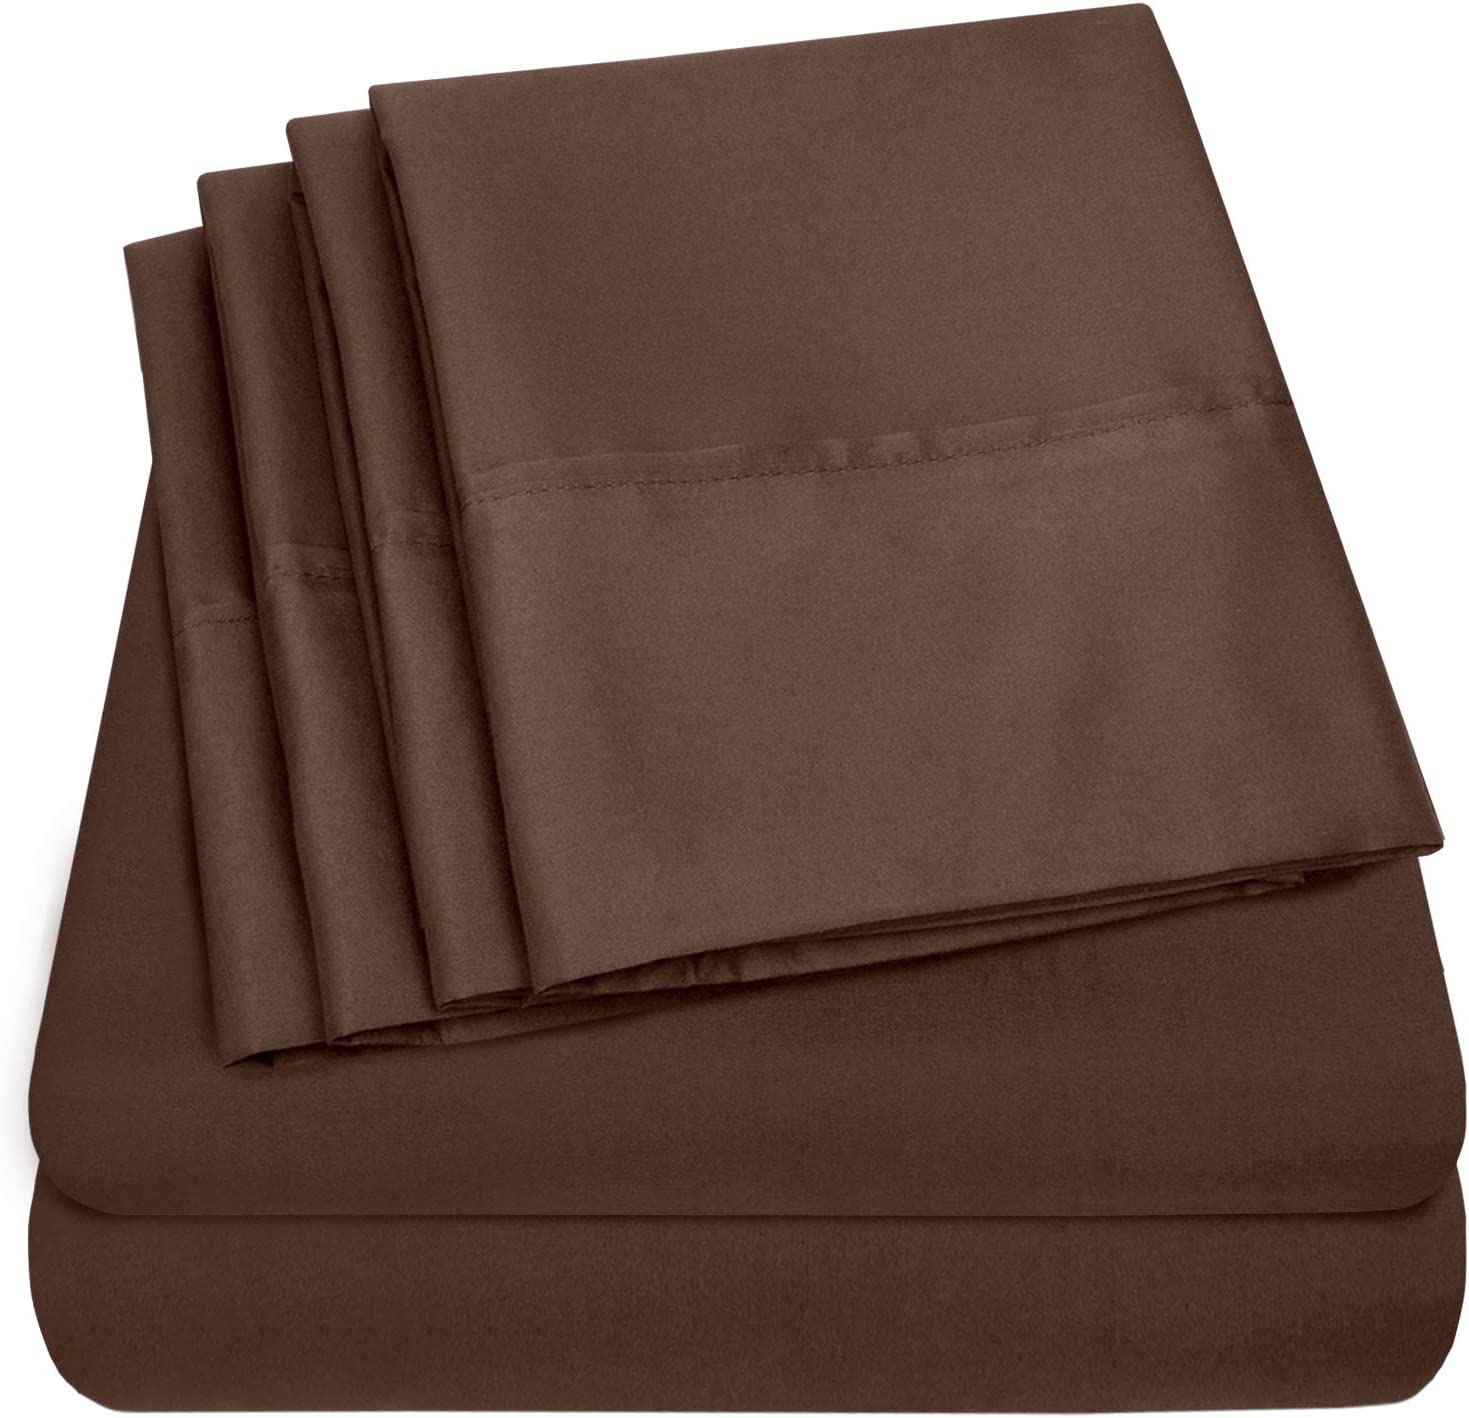 Sweet Home Collection 6 Piece Bed Sheets 1500 Thread Count Fine Microfiber Deep Pocket Brown Bed Sheet